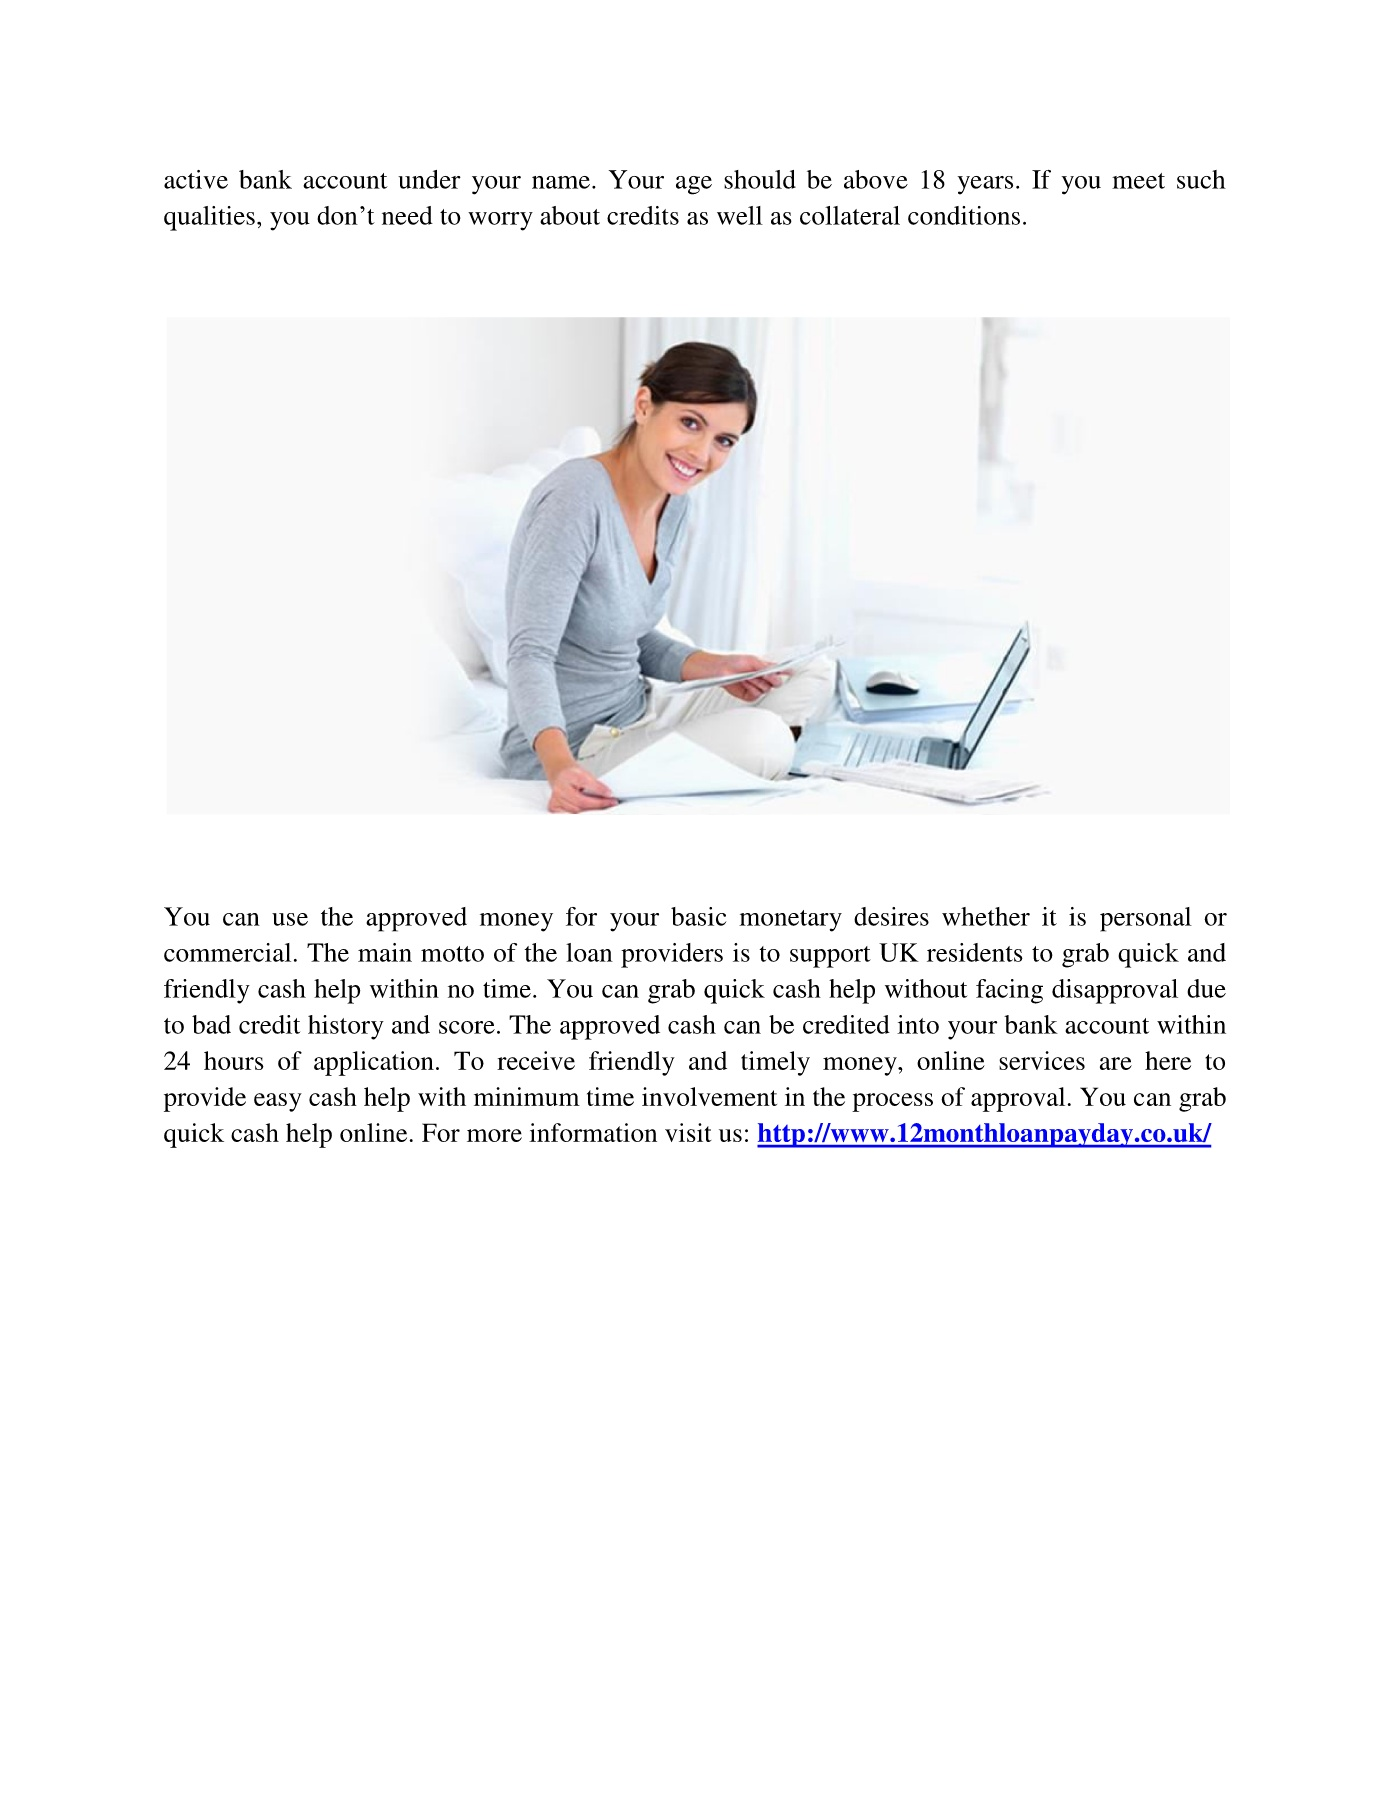 12 month loans for bad credit Pages 1 - 2 - Text Version